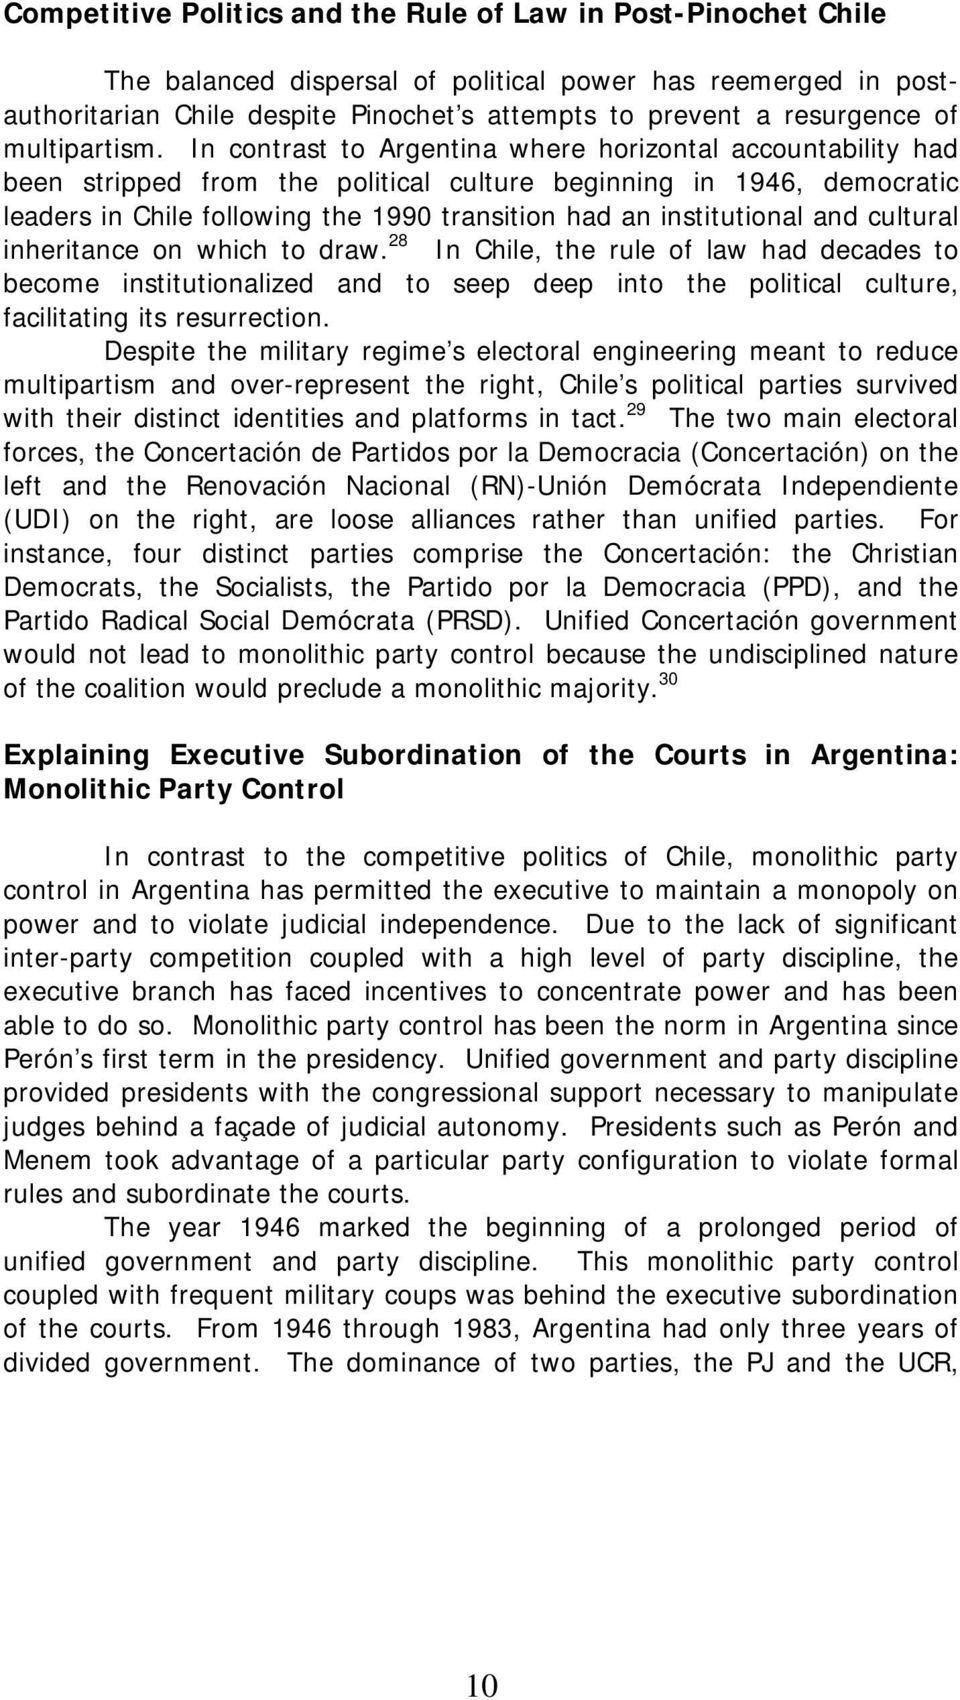 In contrast to Argentina where horizontal accountability had been stripped from the political culture beginning in 1946, democratic leaders in Chile following the 1990 transition had an institutional